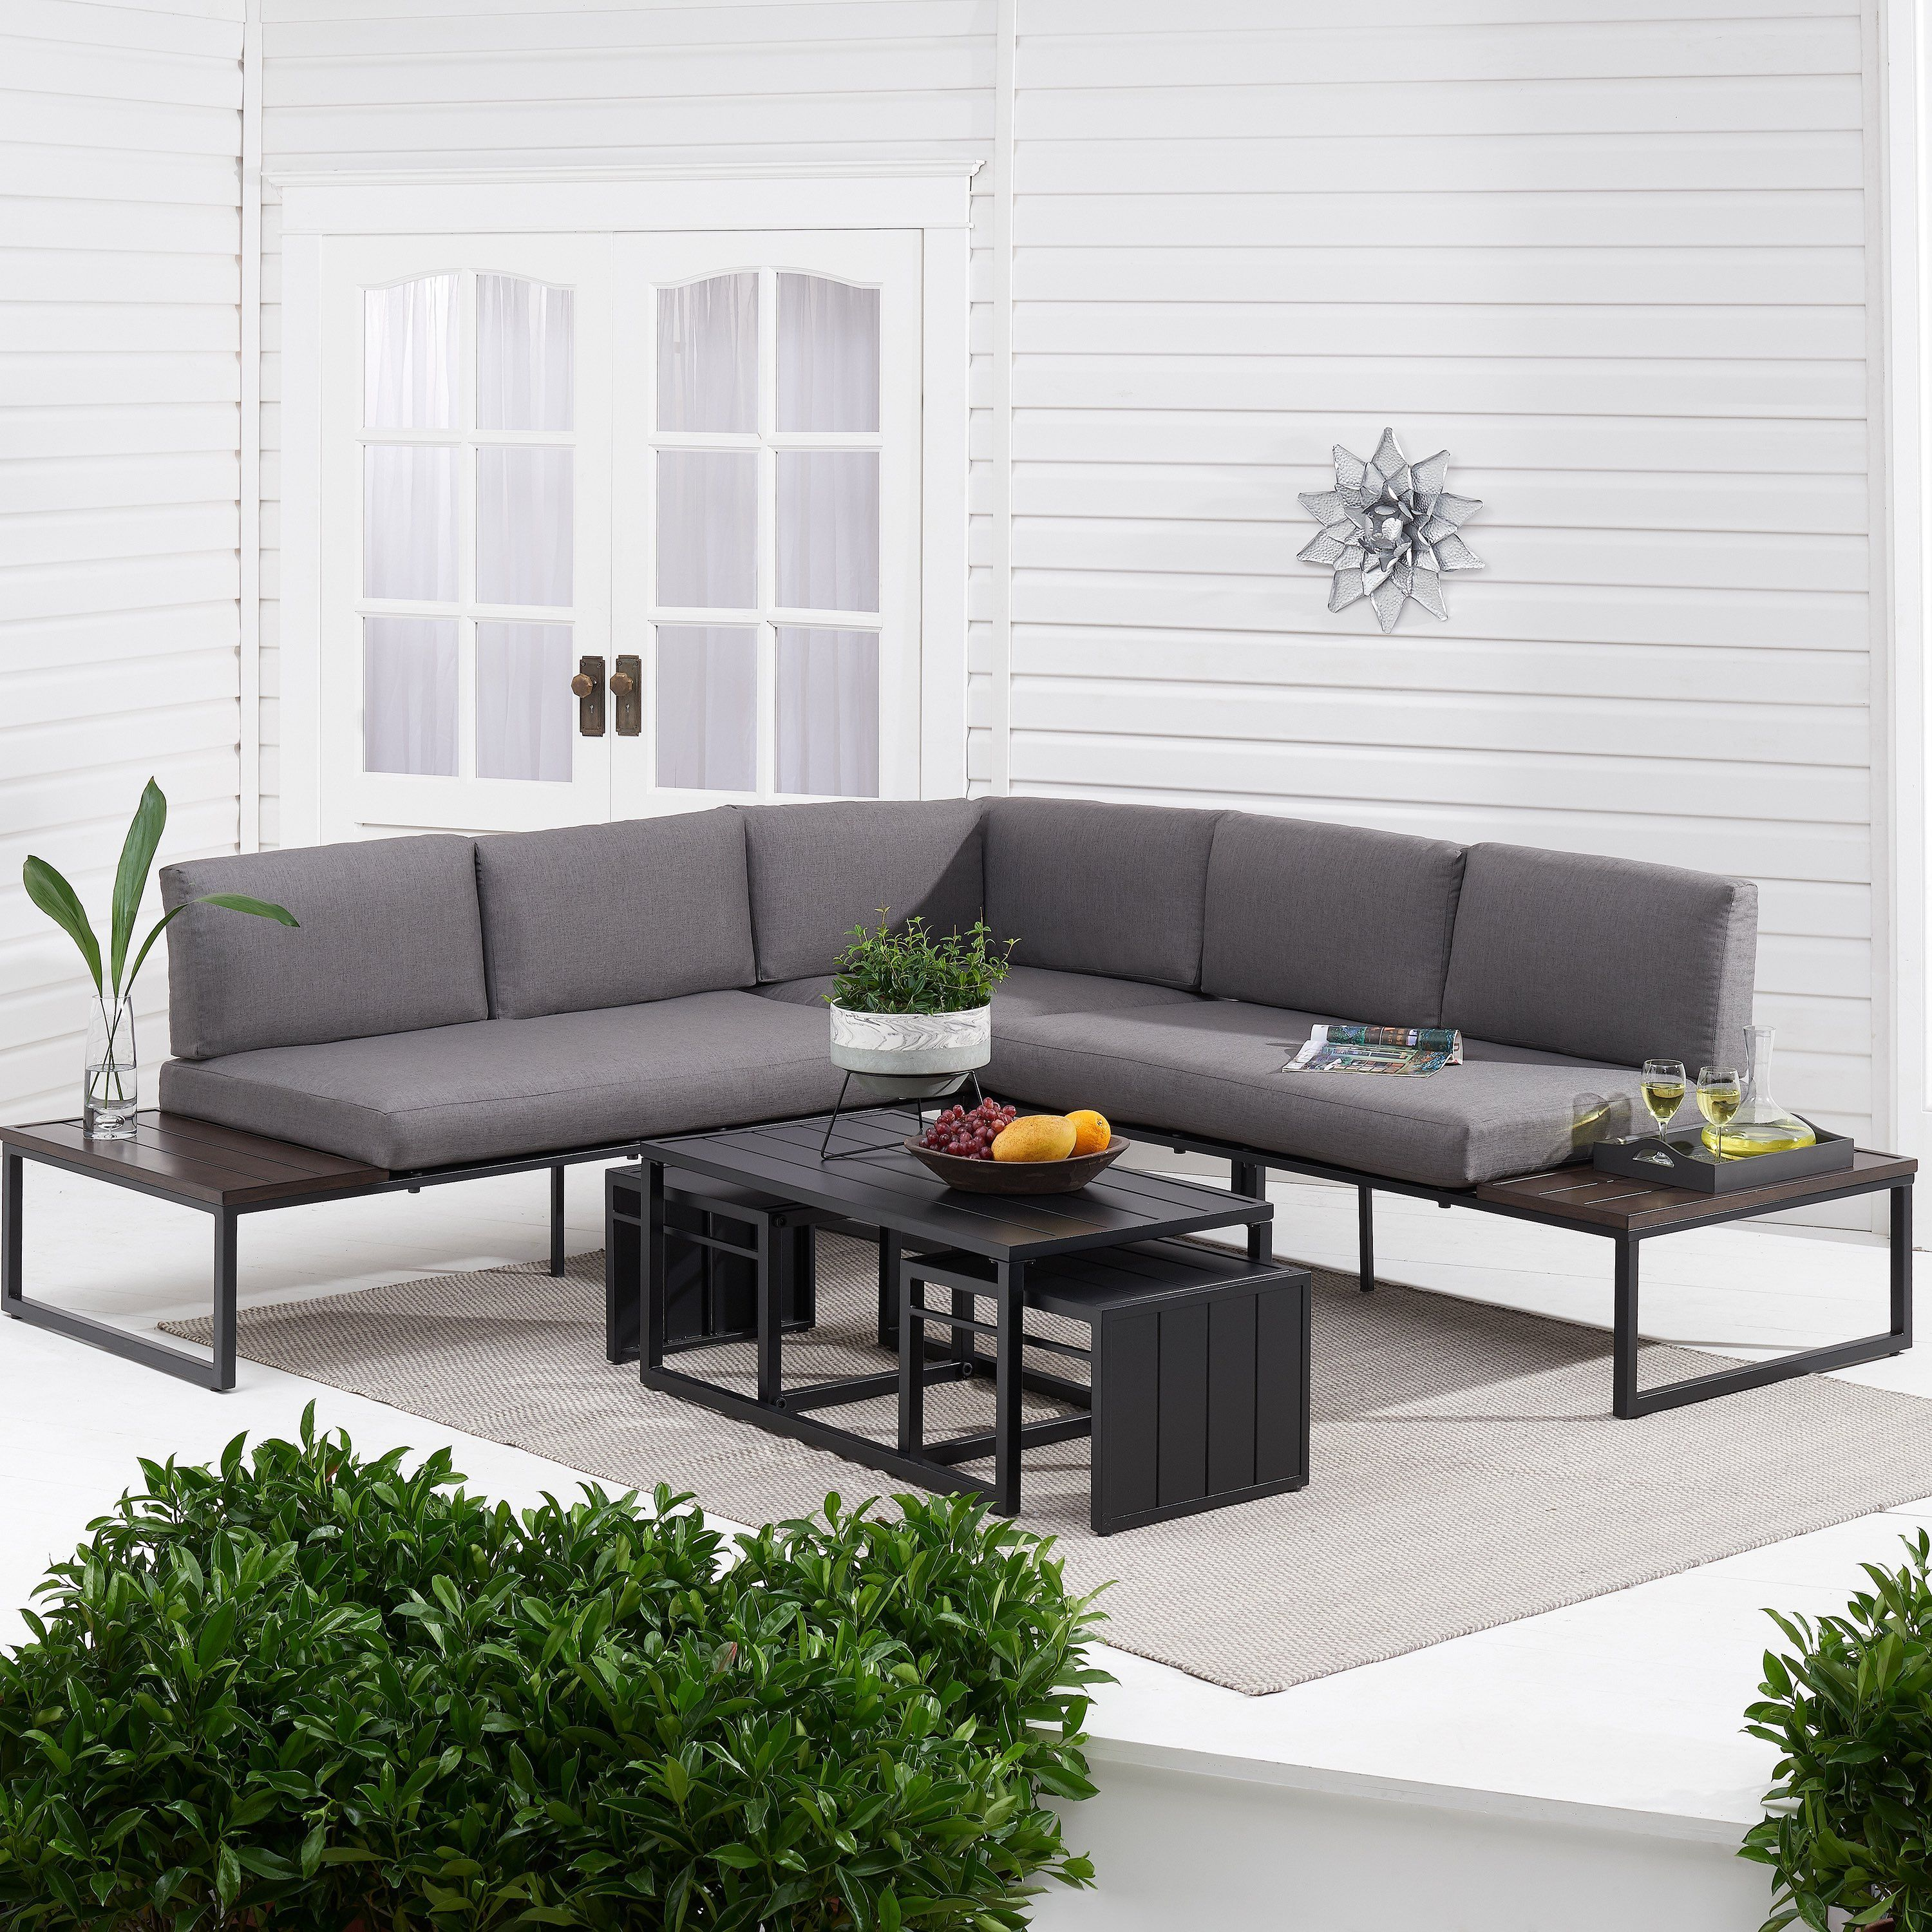 Kolton 3-Piece Outdoor Patio Sectional Set #outdoor #patio ...